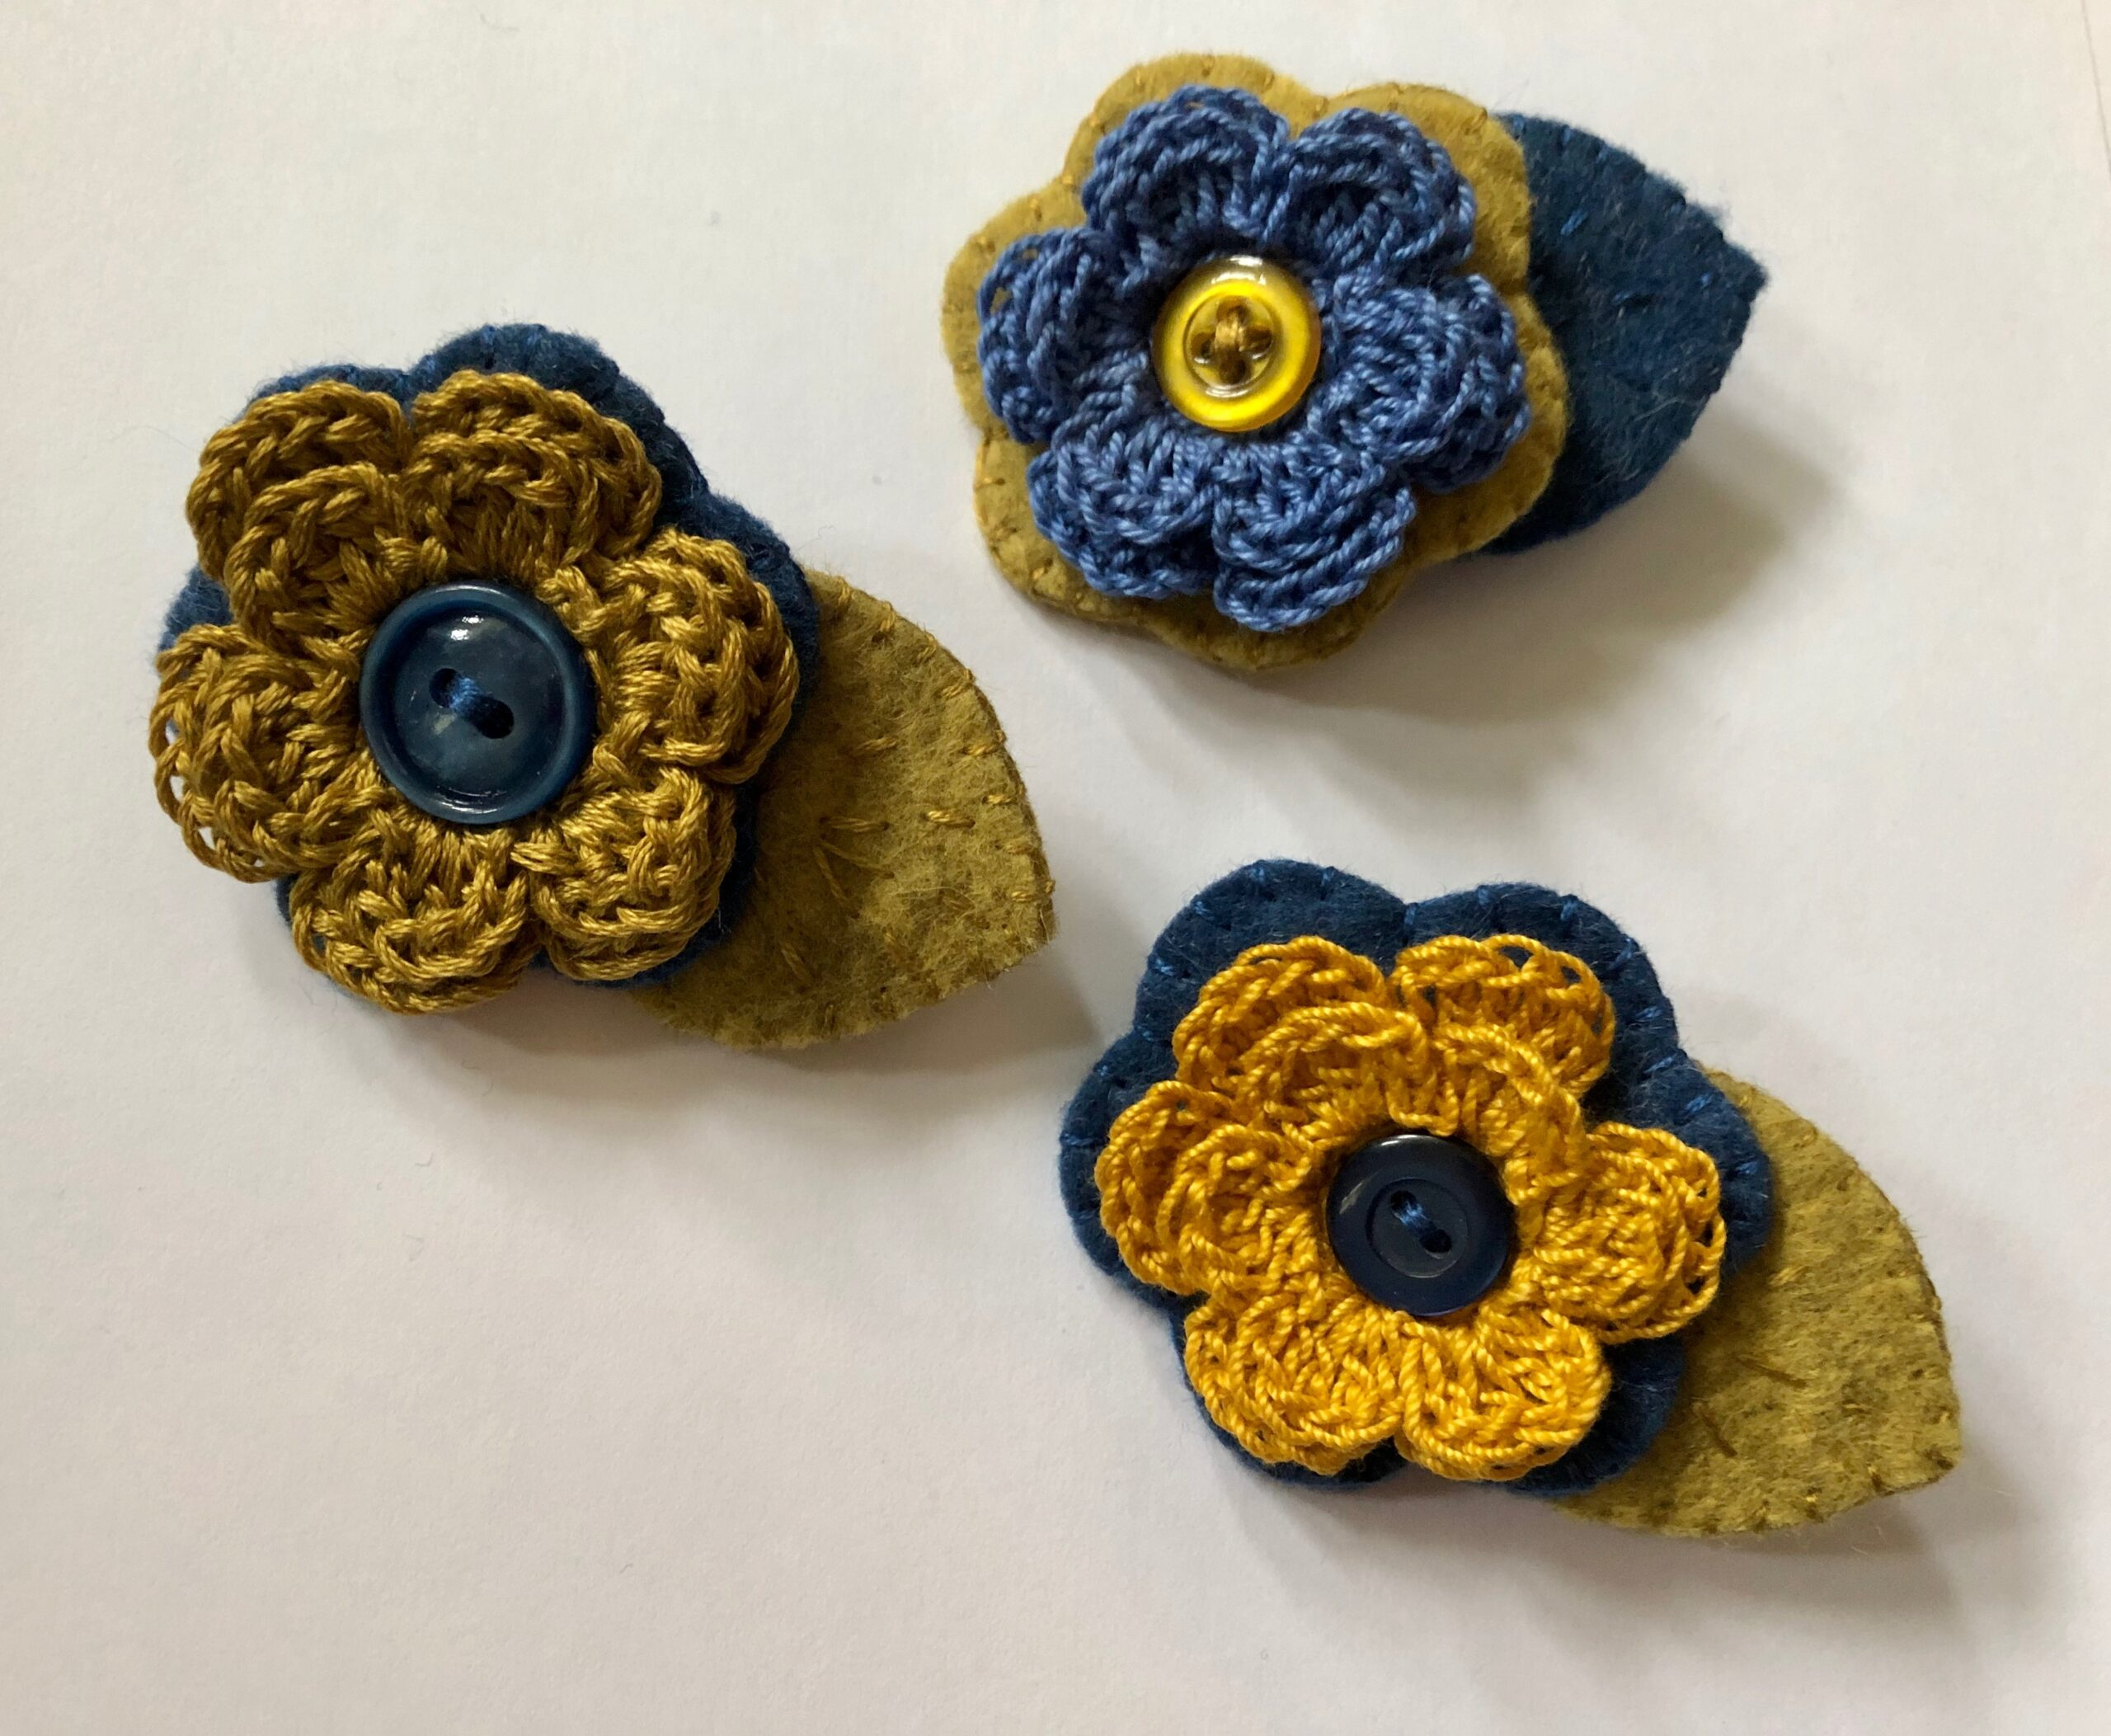 Crocheted and felt flower brooches.